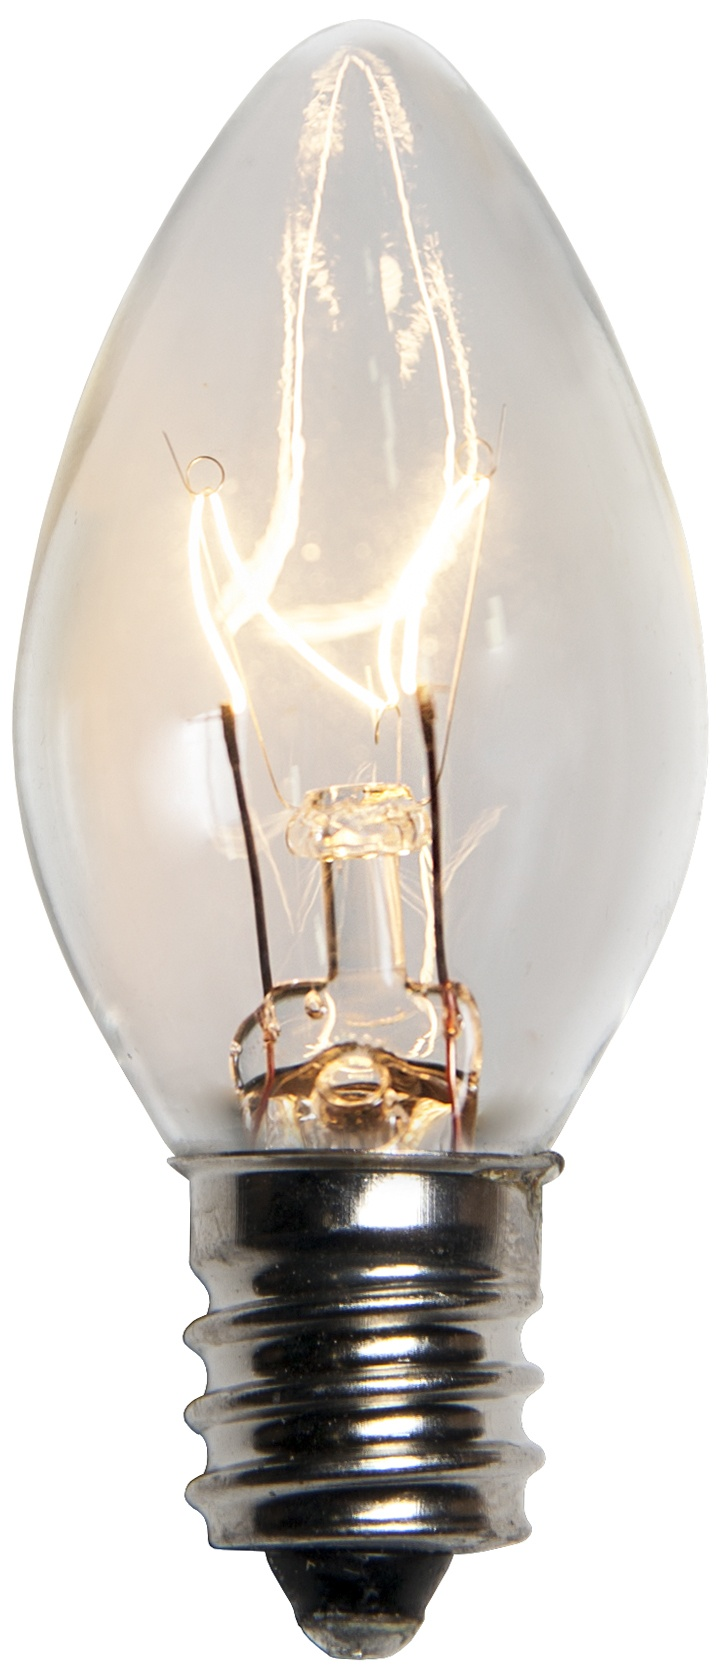 C7 Clear Transparent Incandescent Bulb